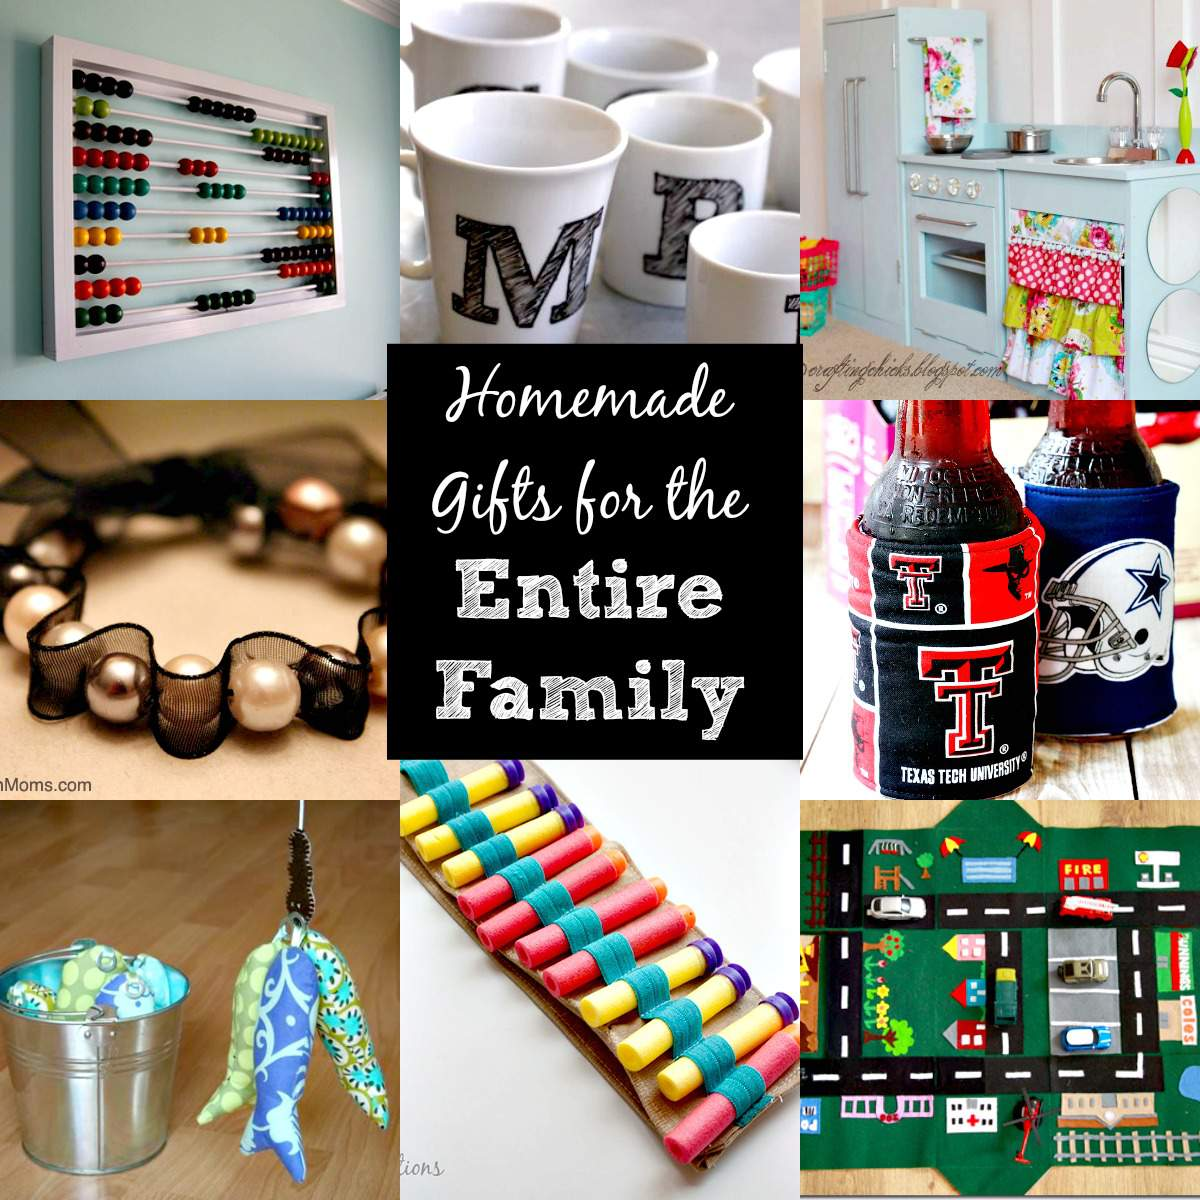 Gifts For Friends At Christmas: DIY Christmas Gift Ideas For The Entire Family